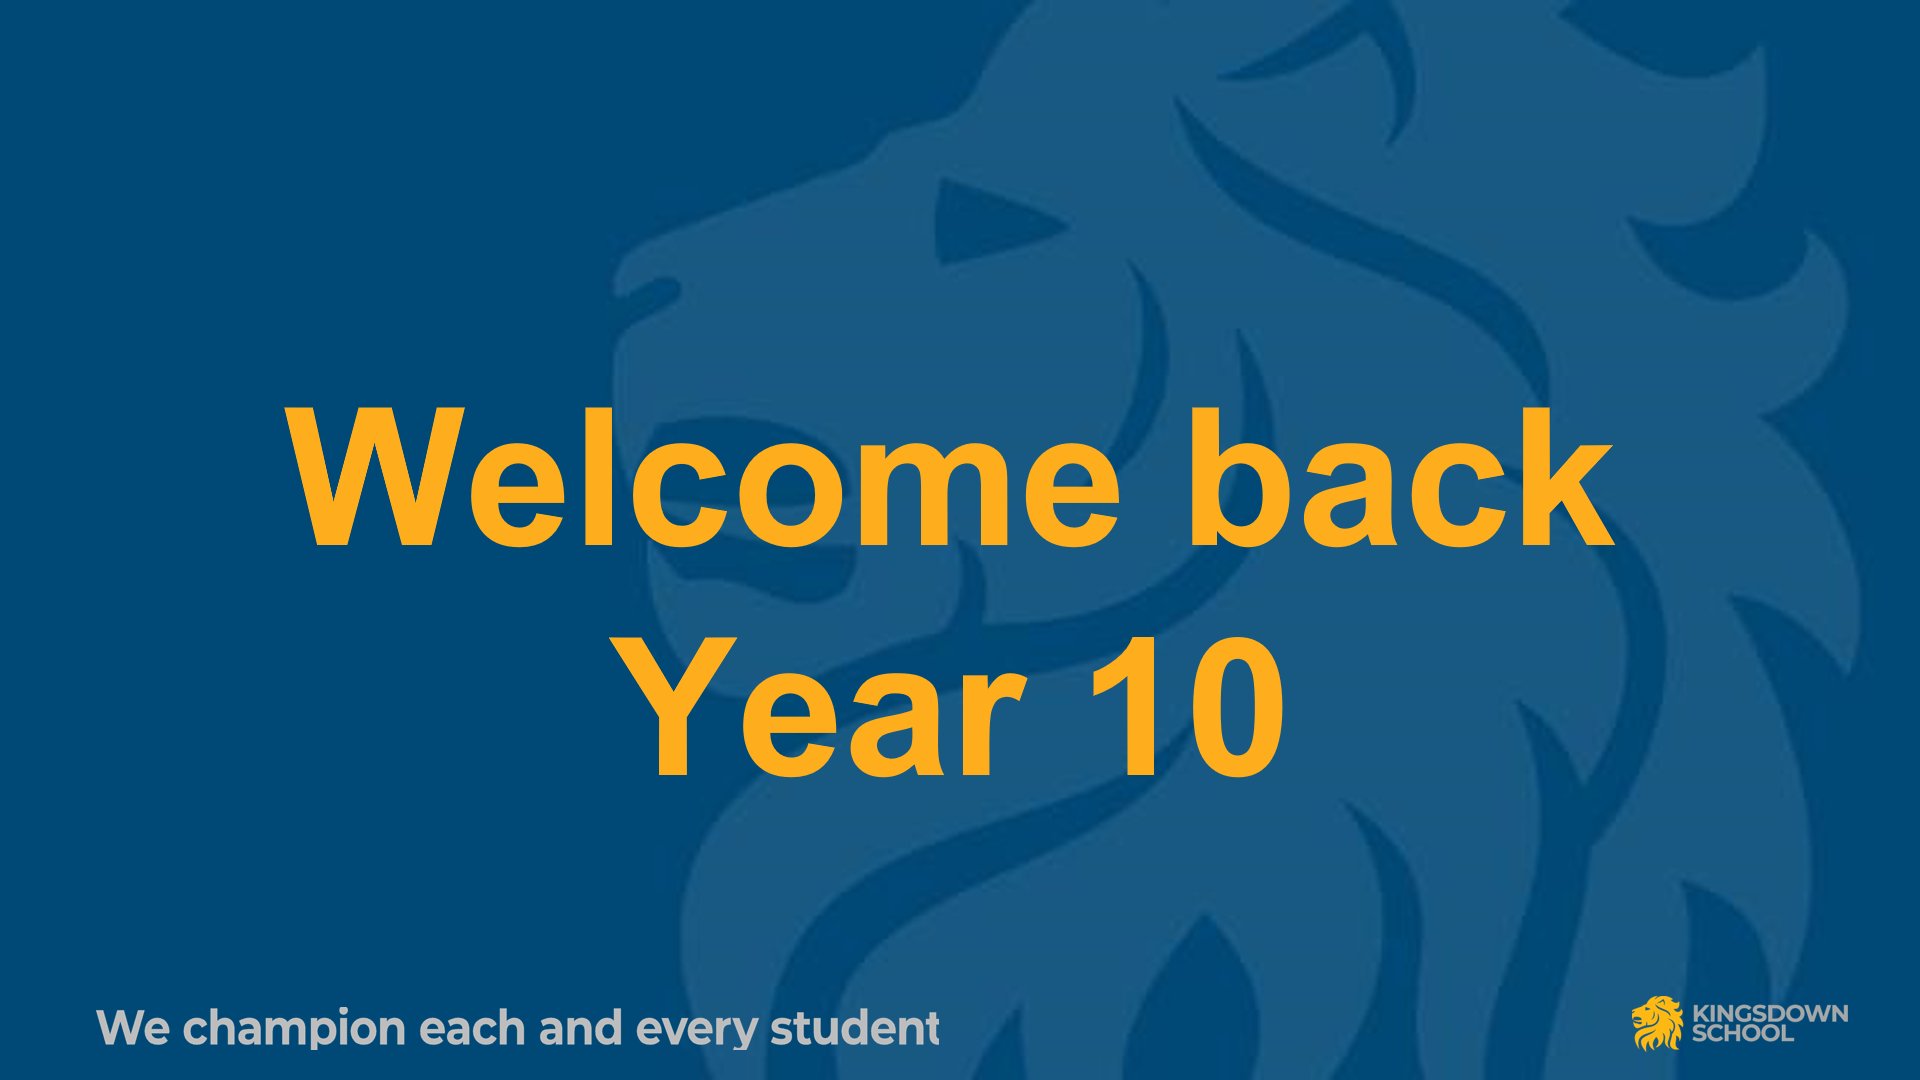 A return to school for Year 10 students